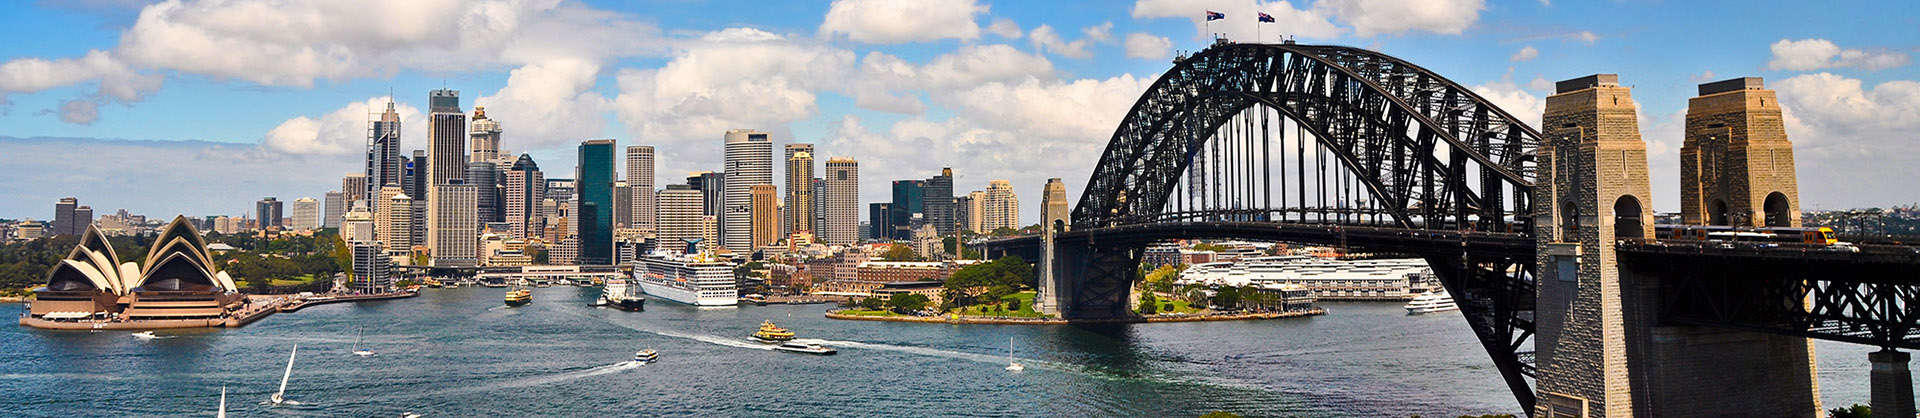 Sydney city skyline featuring the Harbour Bridge and Opera House